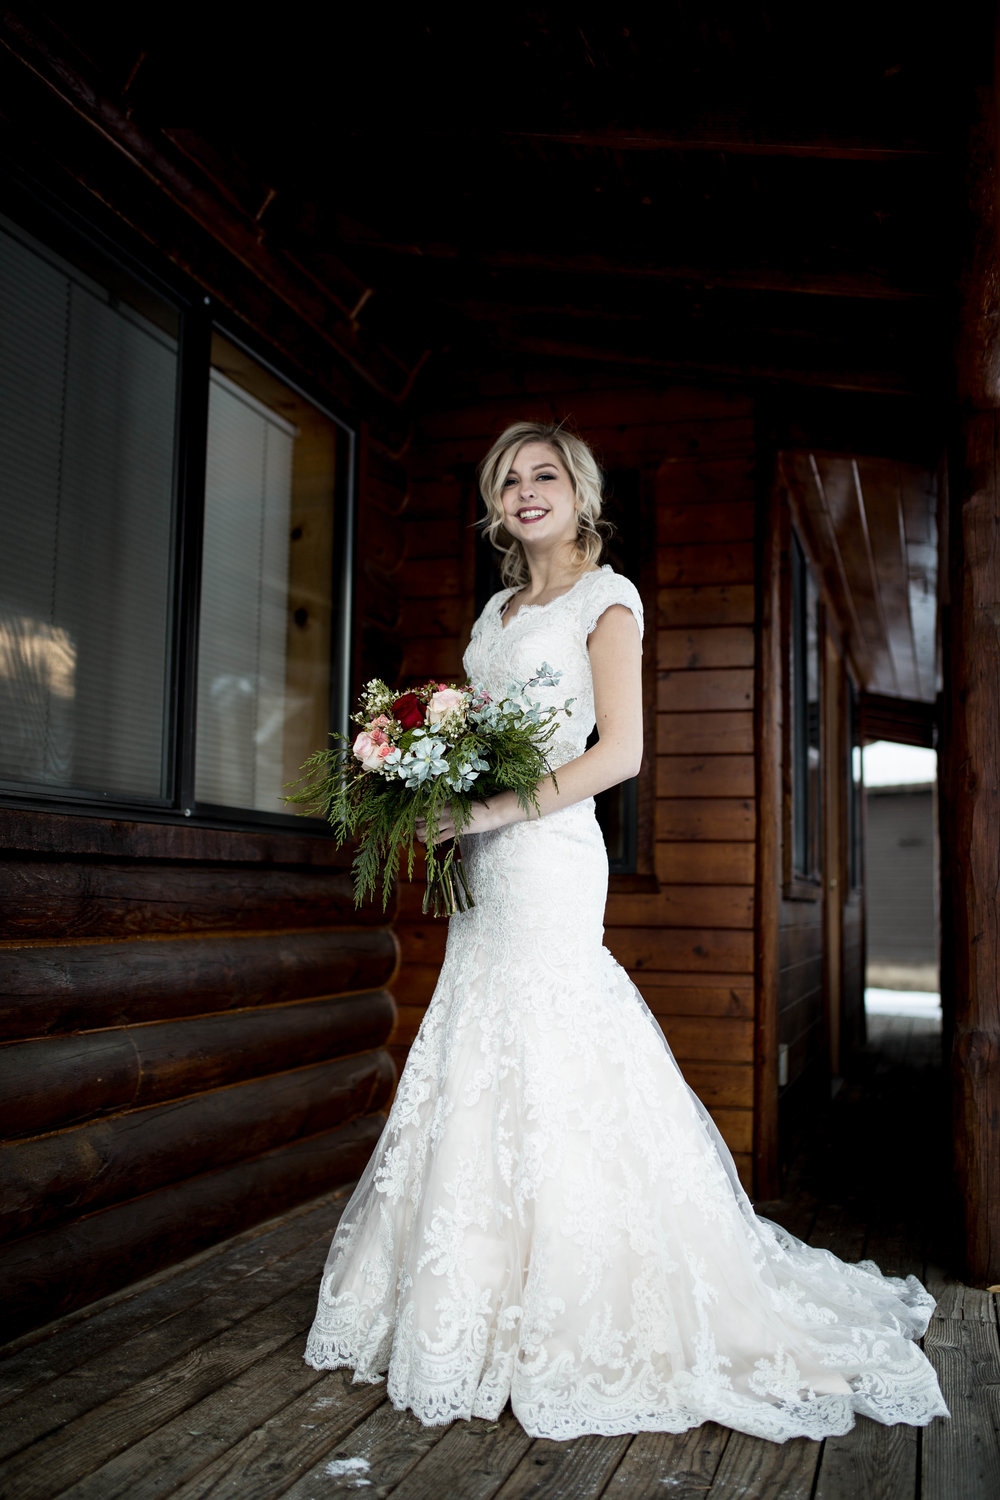 WinterWeddingBridalsTarghee (3 of 121).jpg